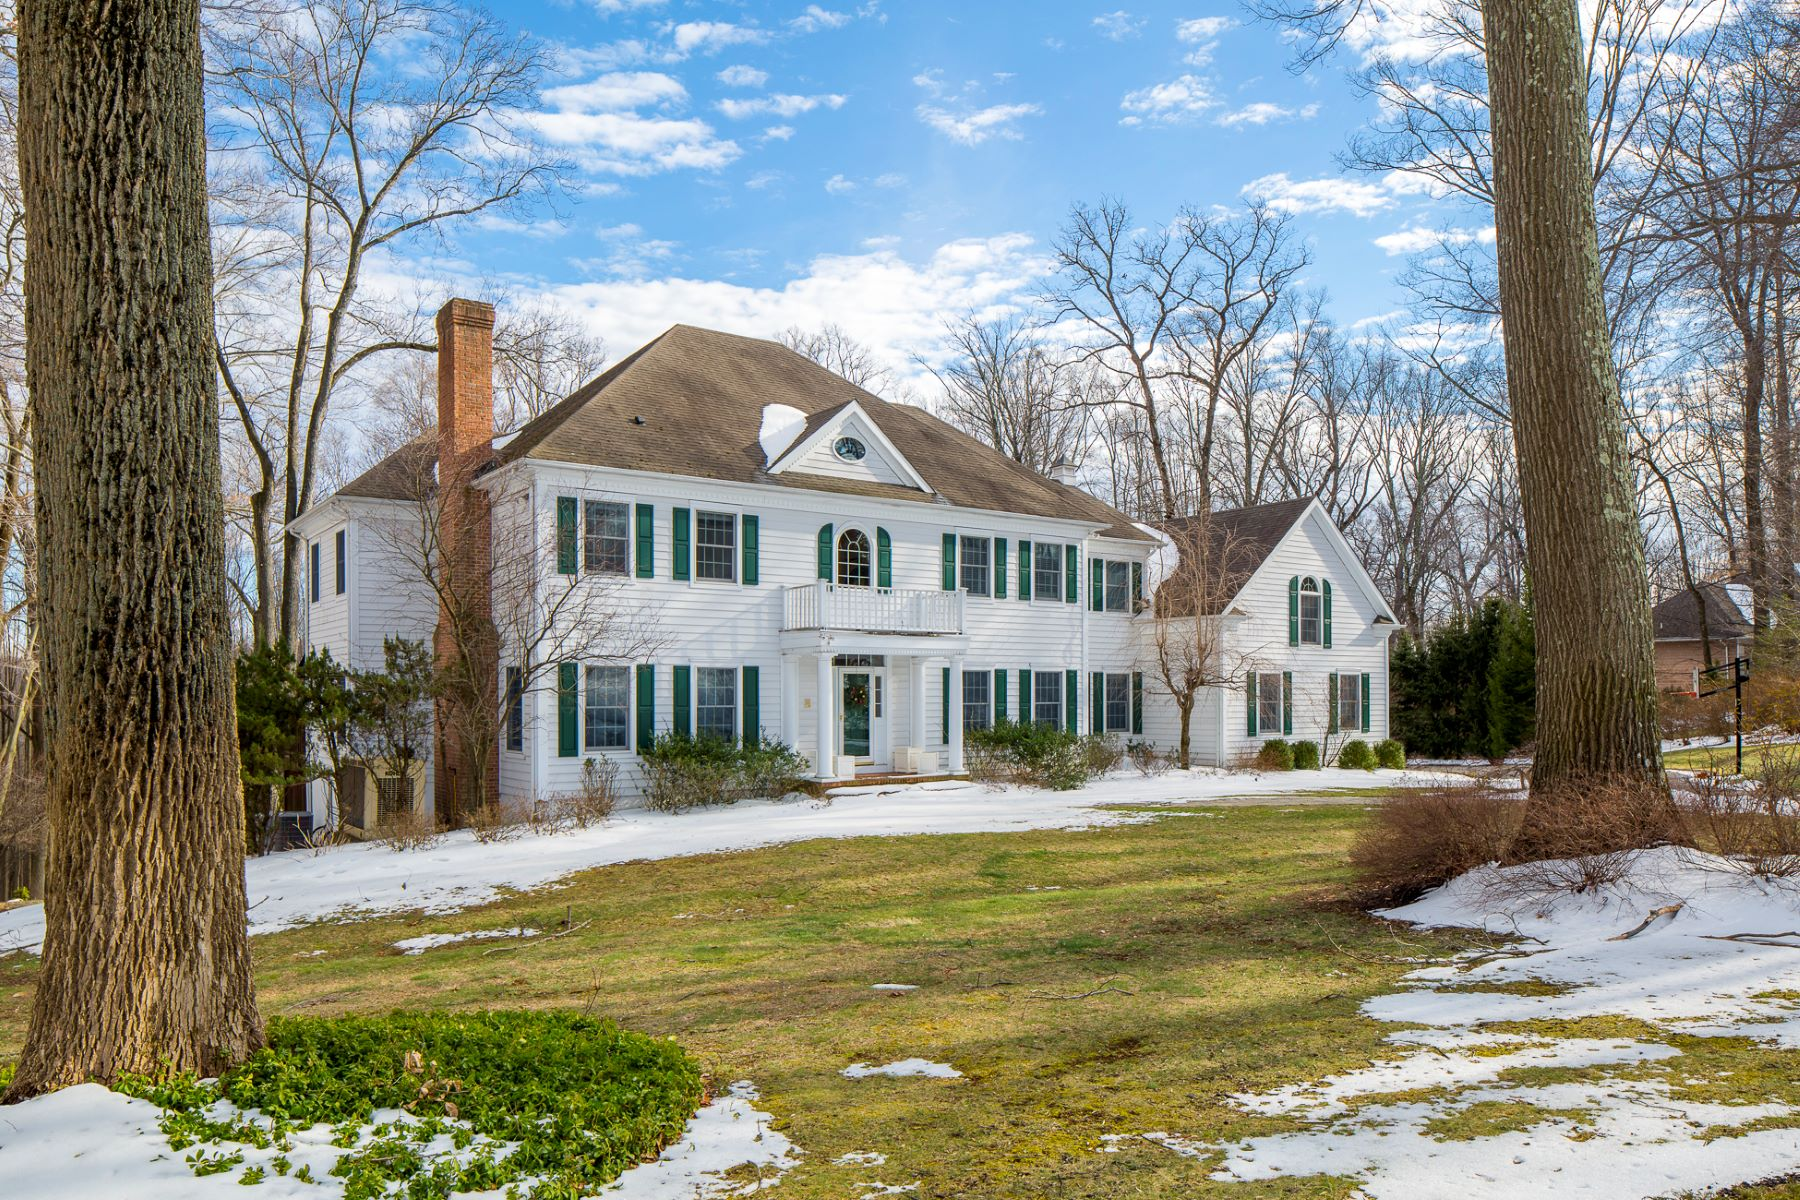 Частный односемейный дом для того Продажа на This High-End Home Checks Every Box - Hopewell Township 19 Harbourton Ridge Drive Pennington, 08534 Соединенные Штаты